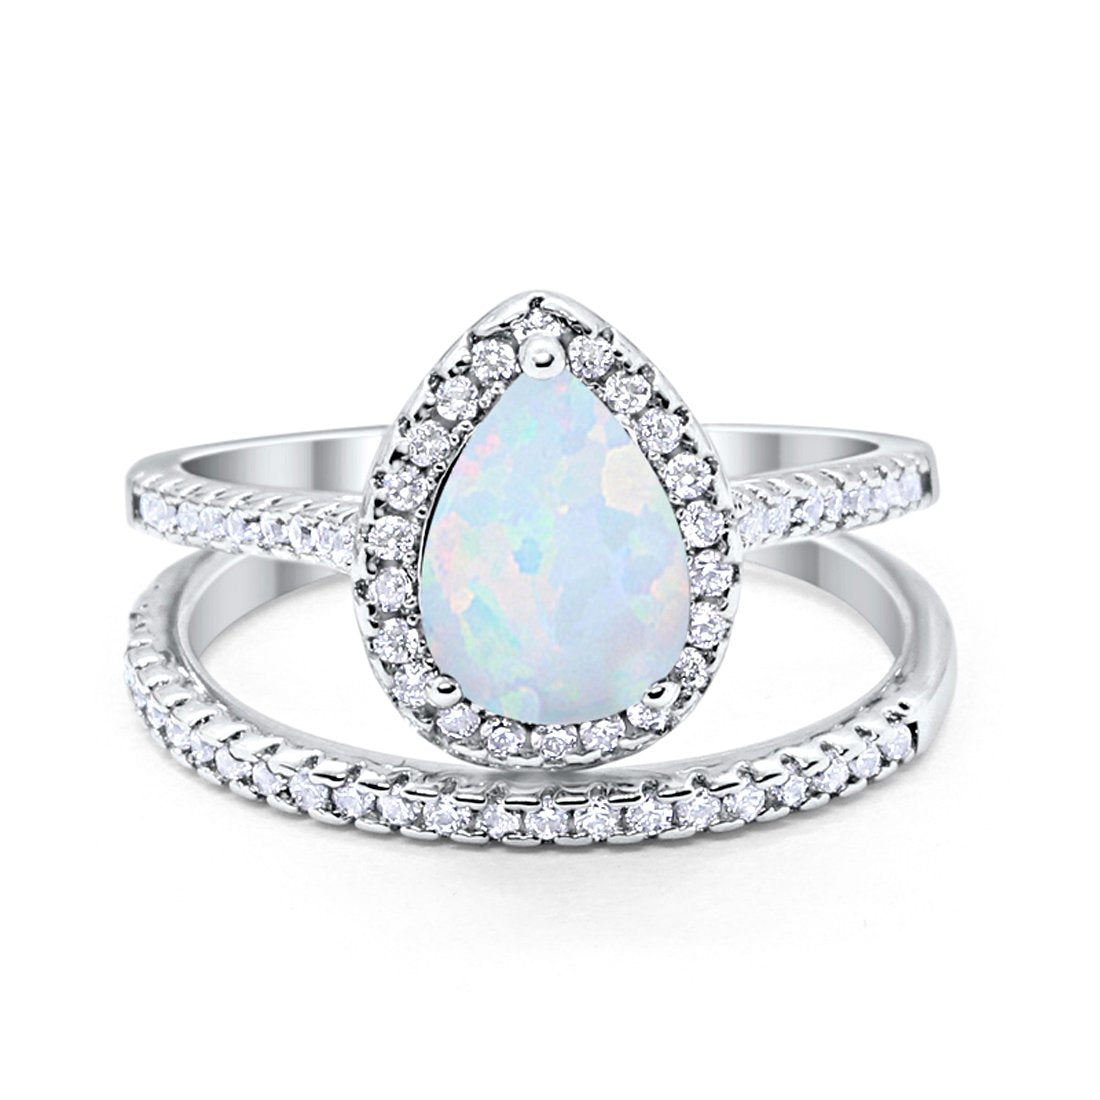 Teardrop Bridal Engagement Ring Lab Created White Opal 925 Sterling Silver